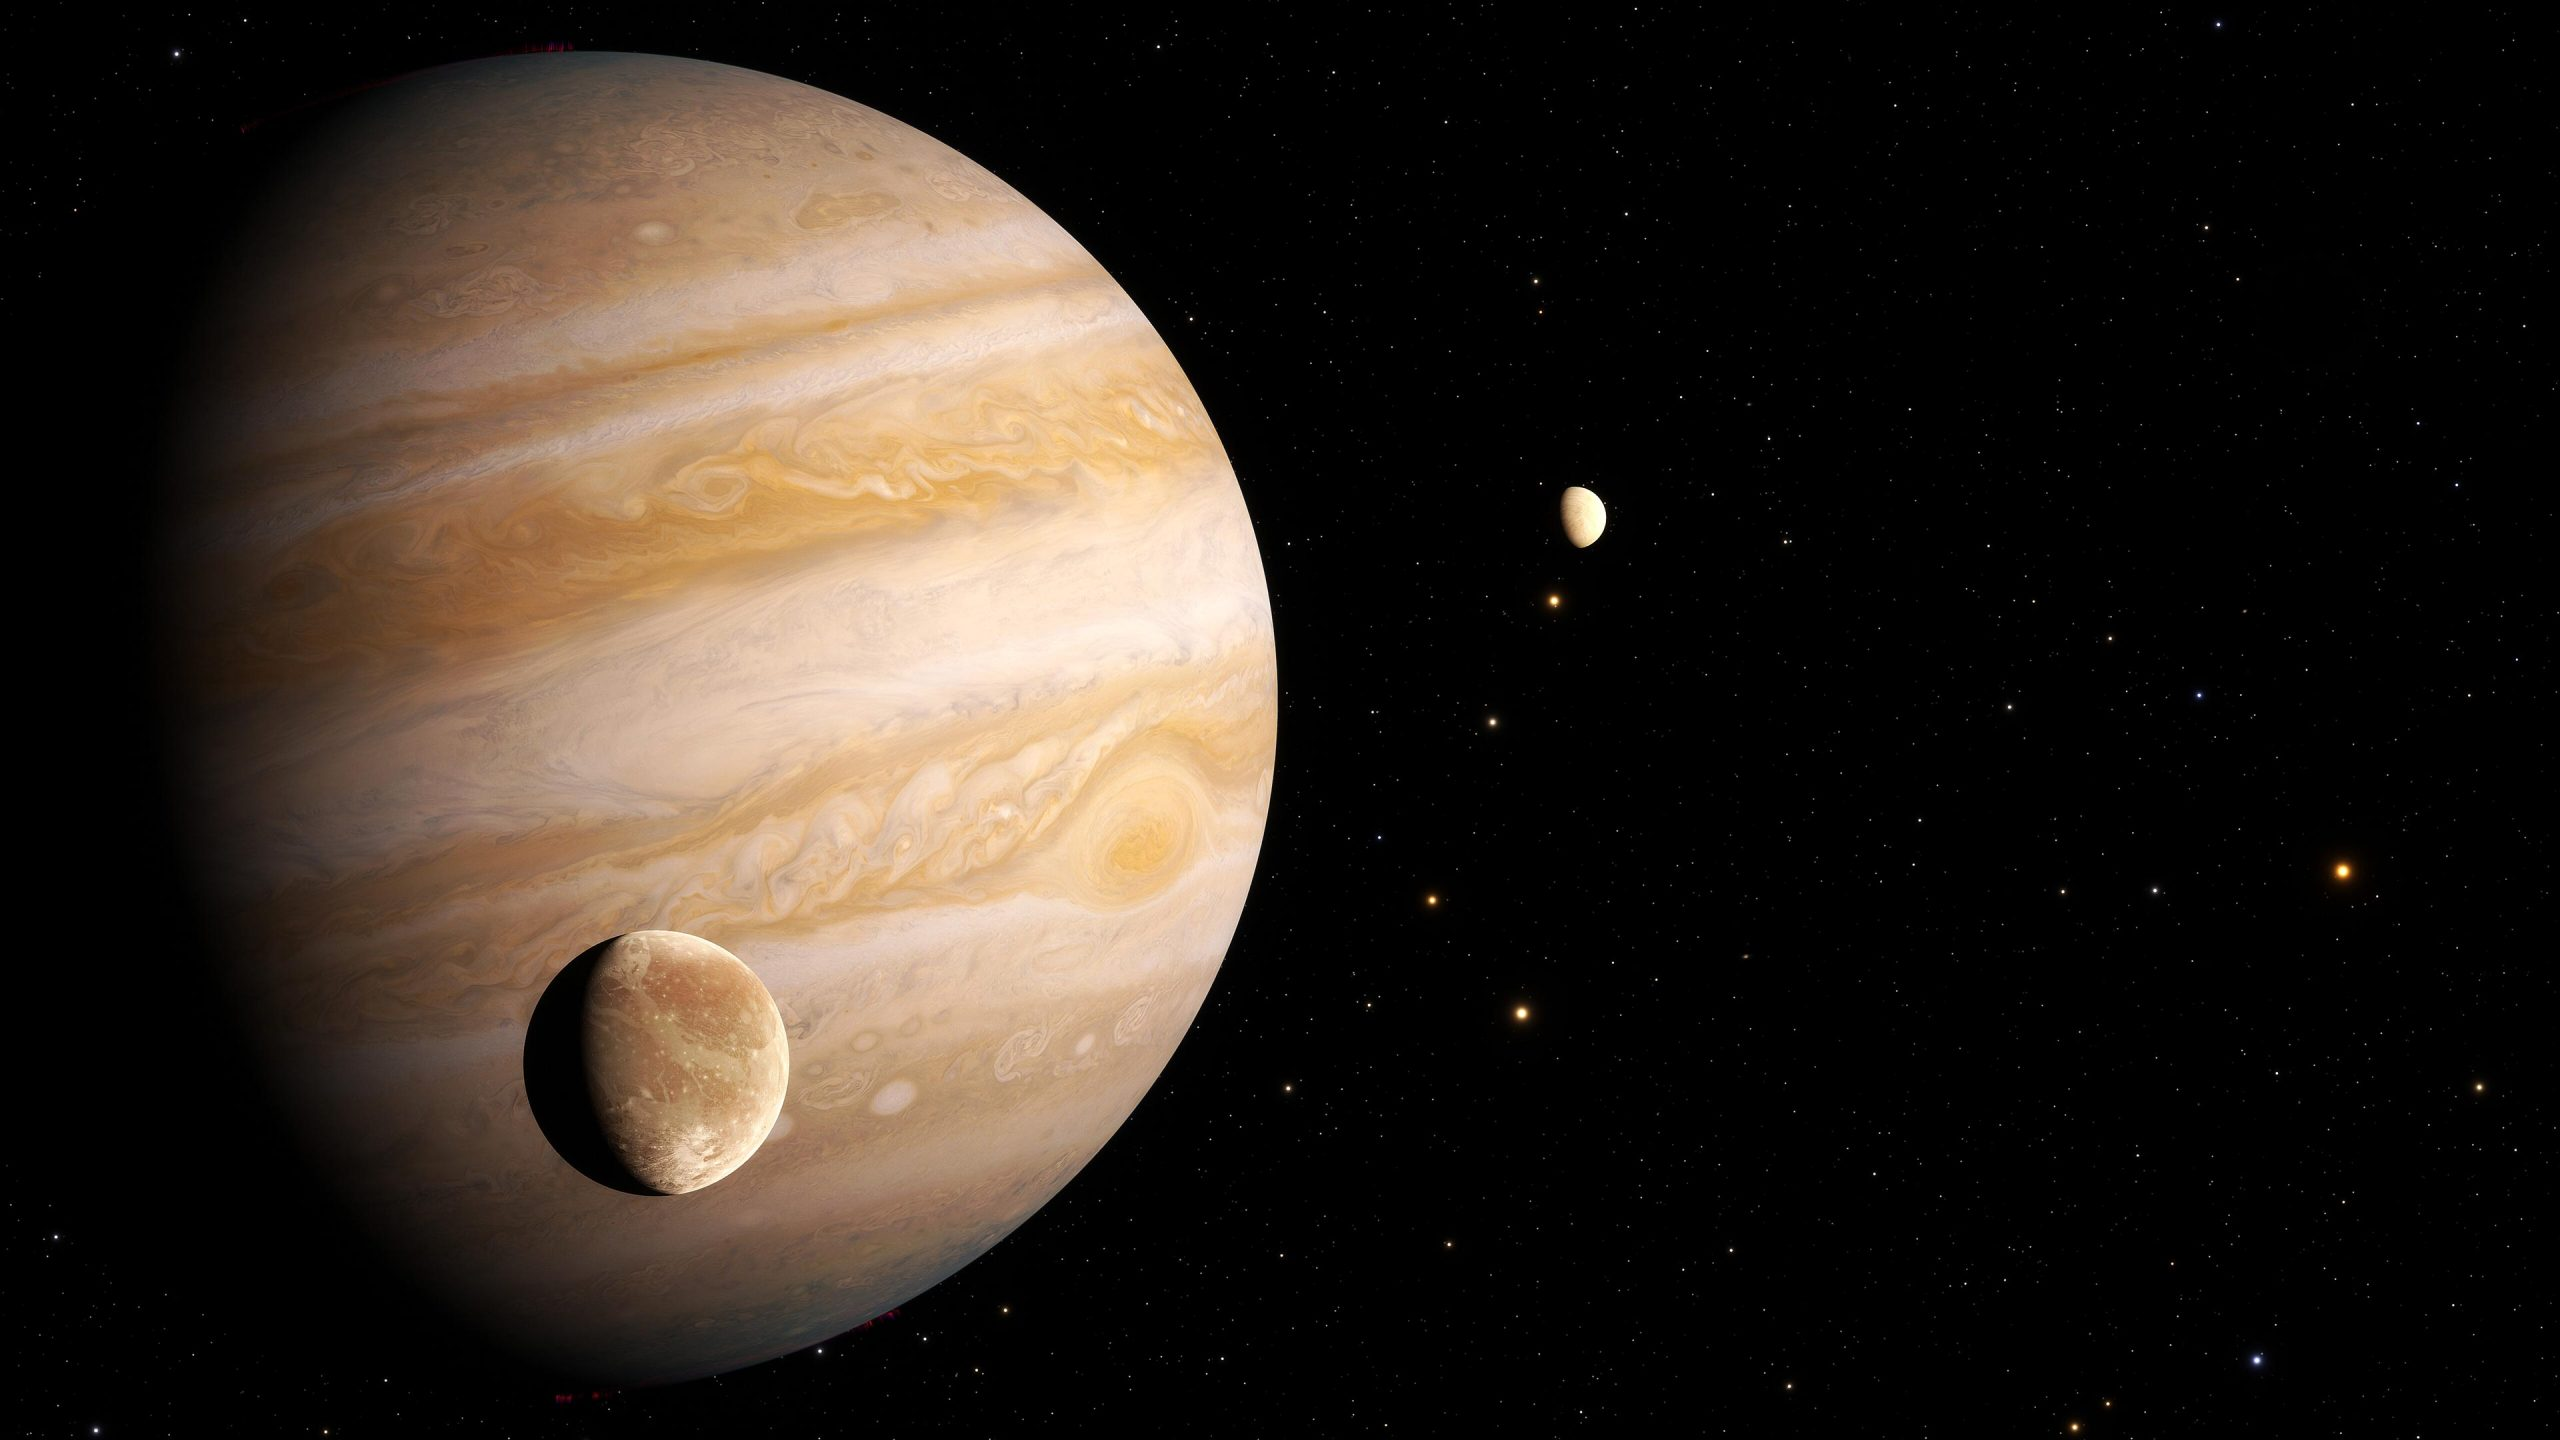 Hubble Finds First Evidence of Water Vapor in the Atmosphere of Jupiter's Moon Ganymede - SciTechDaily